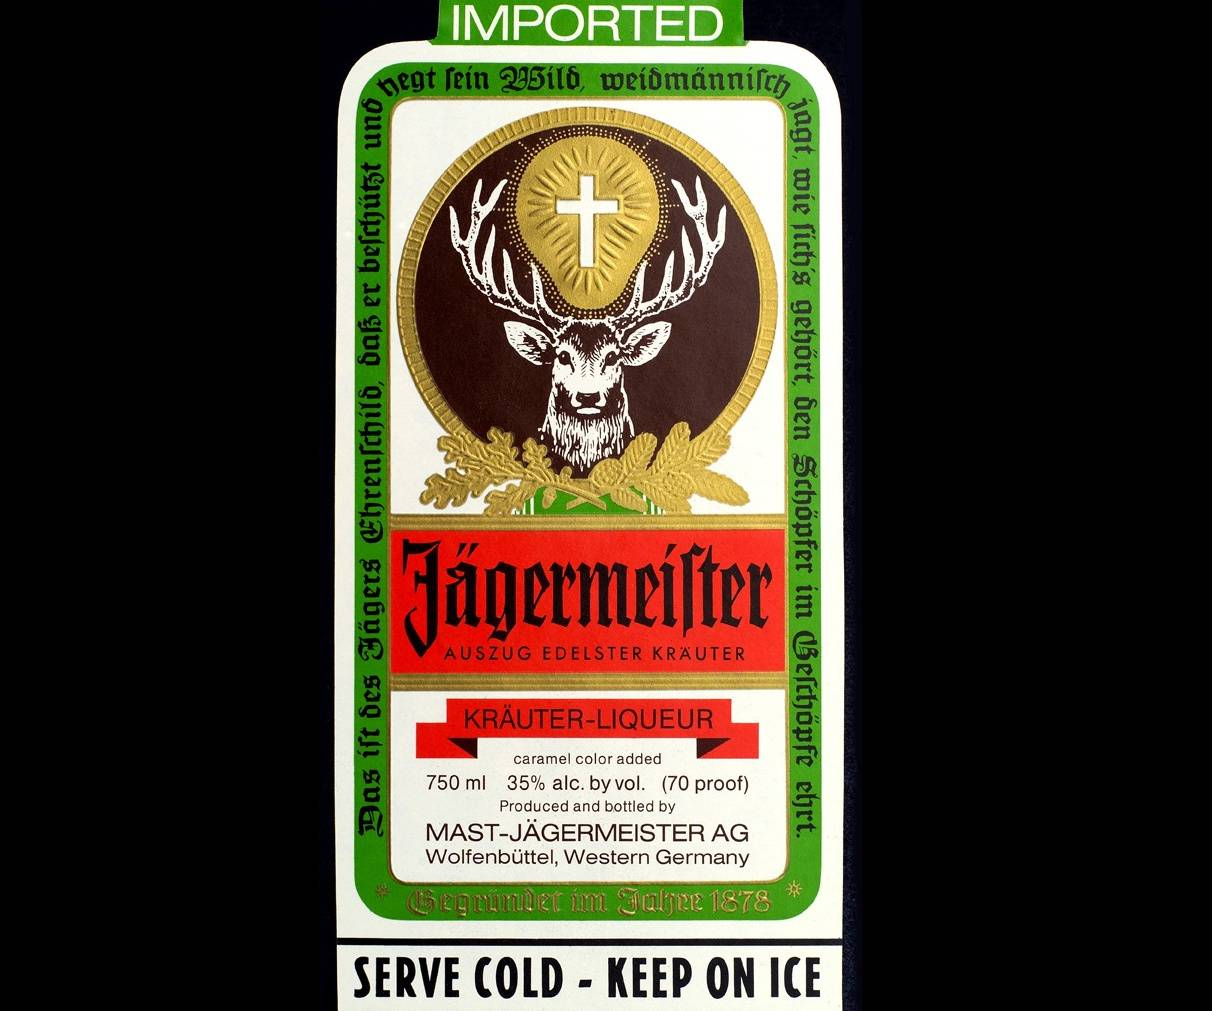 Jagermiester Imoport